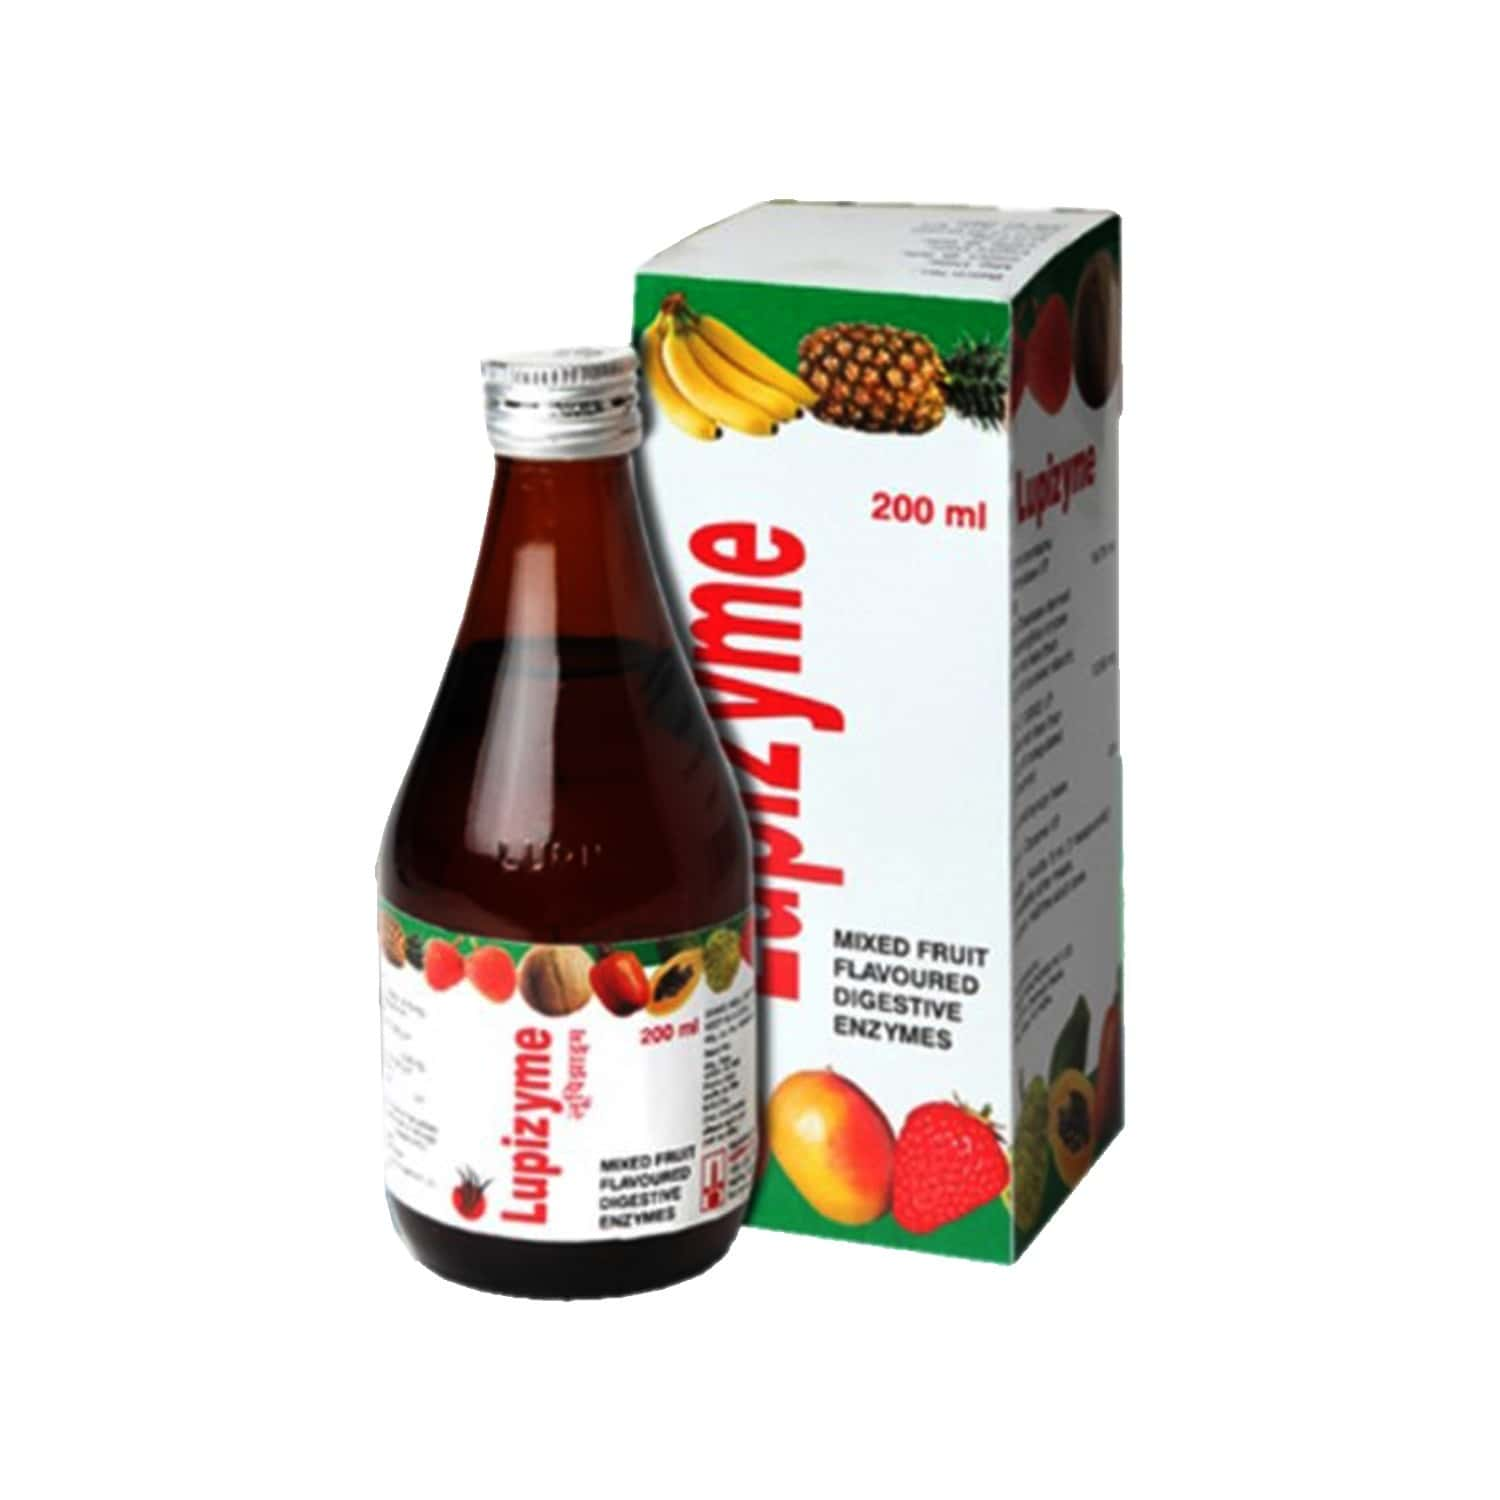 Lupizyme Plus Mixed Fruit Flavour Syrup Of 200ml